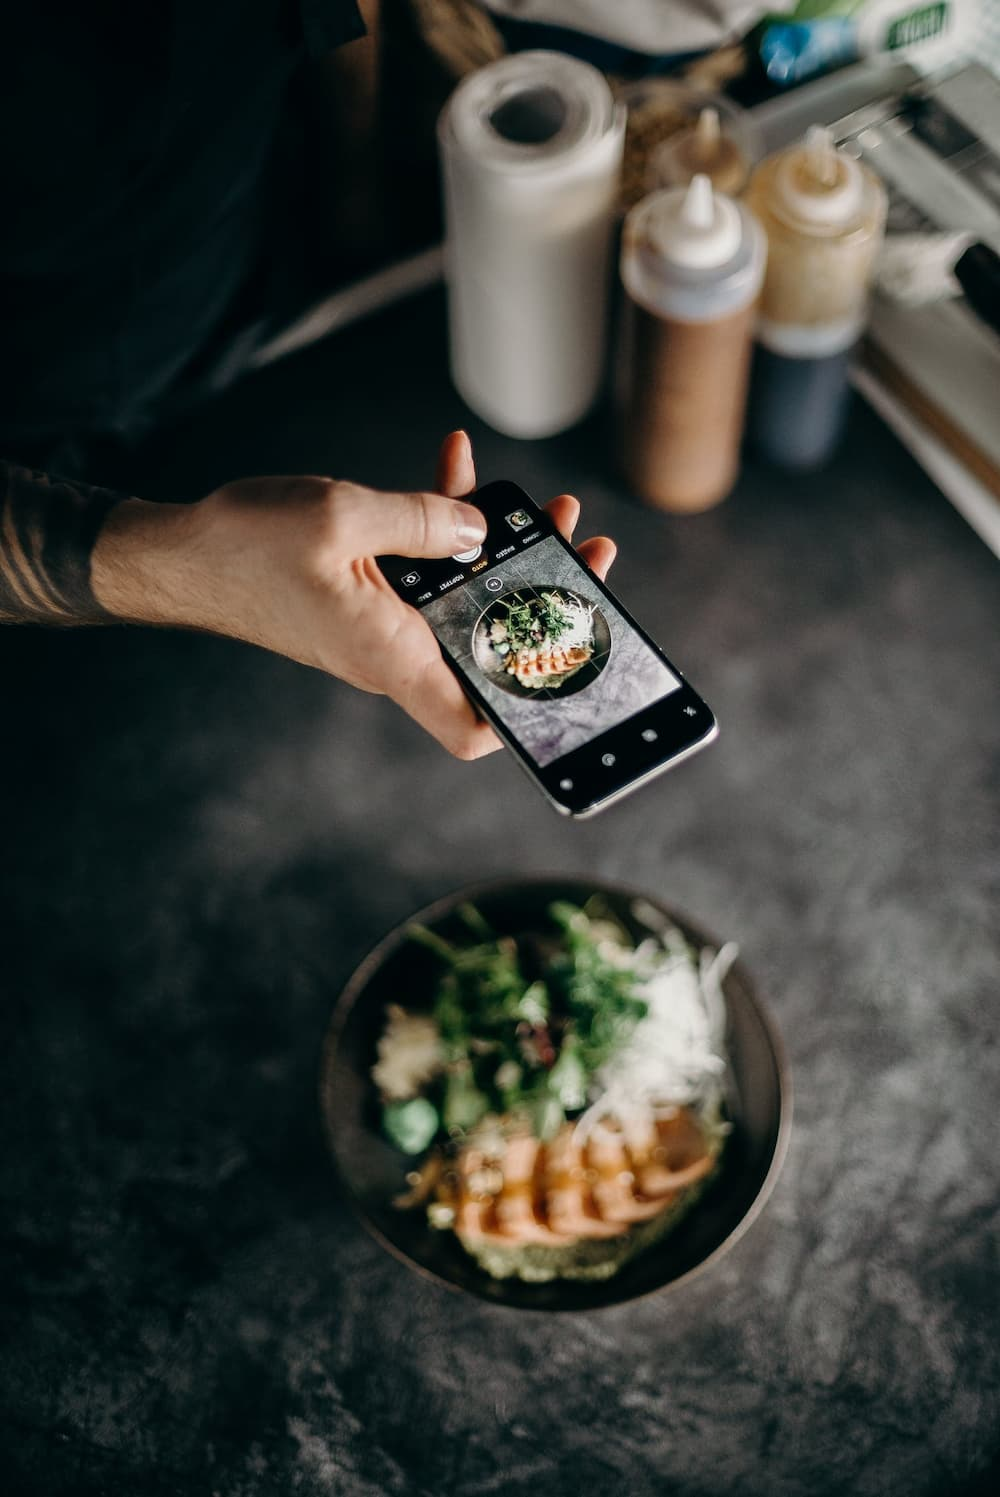 Social media meals and food trends 2021